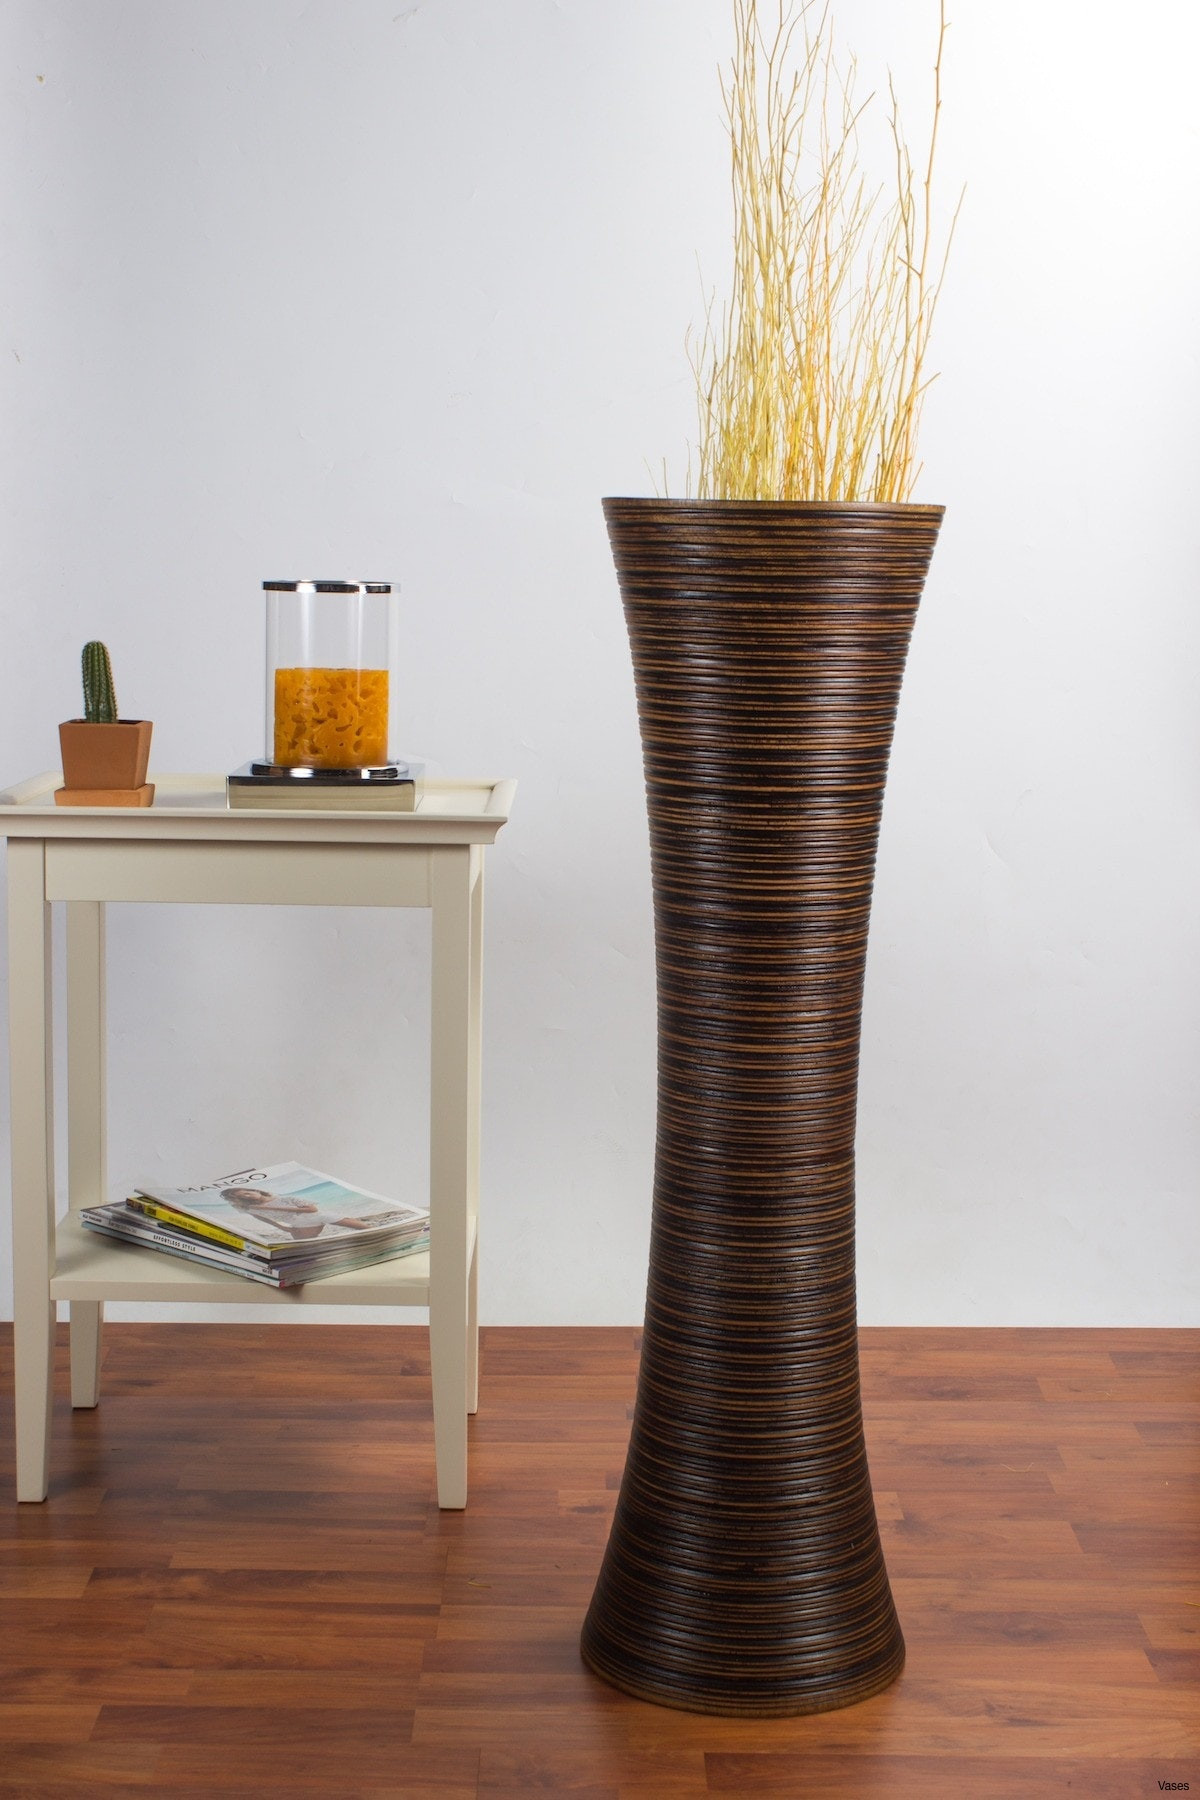 pier 1 tall vases of tall floor vase collection decorative floor vases fresh d dkbrw 5749 in decorative floor vases fresh d dkbrw 5749 1h vases tall brown i 0d